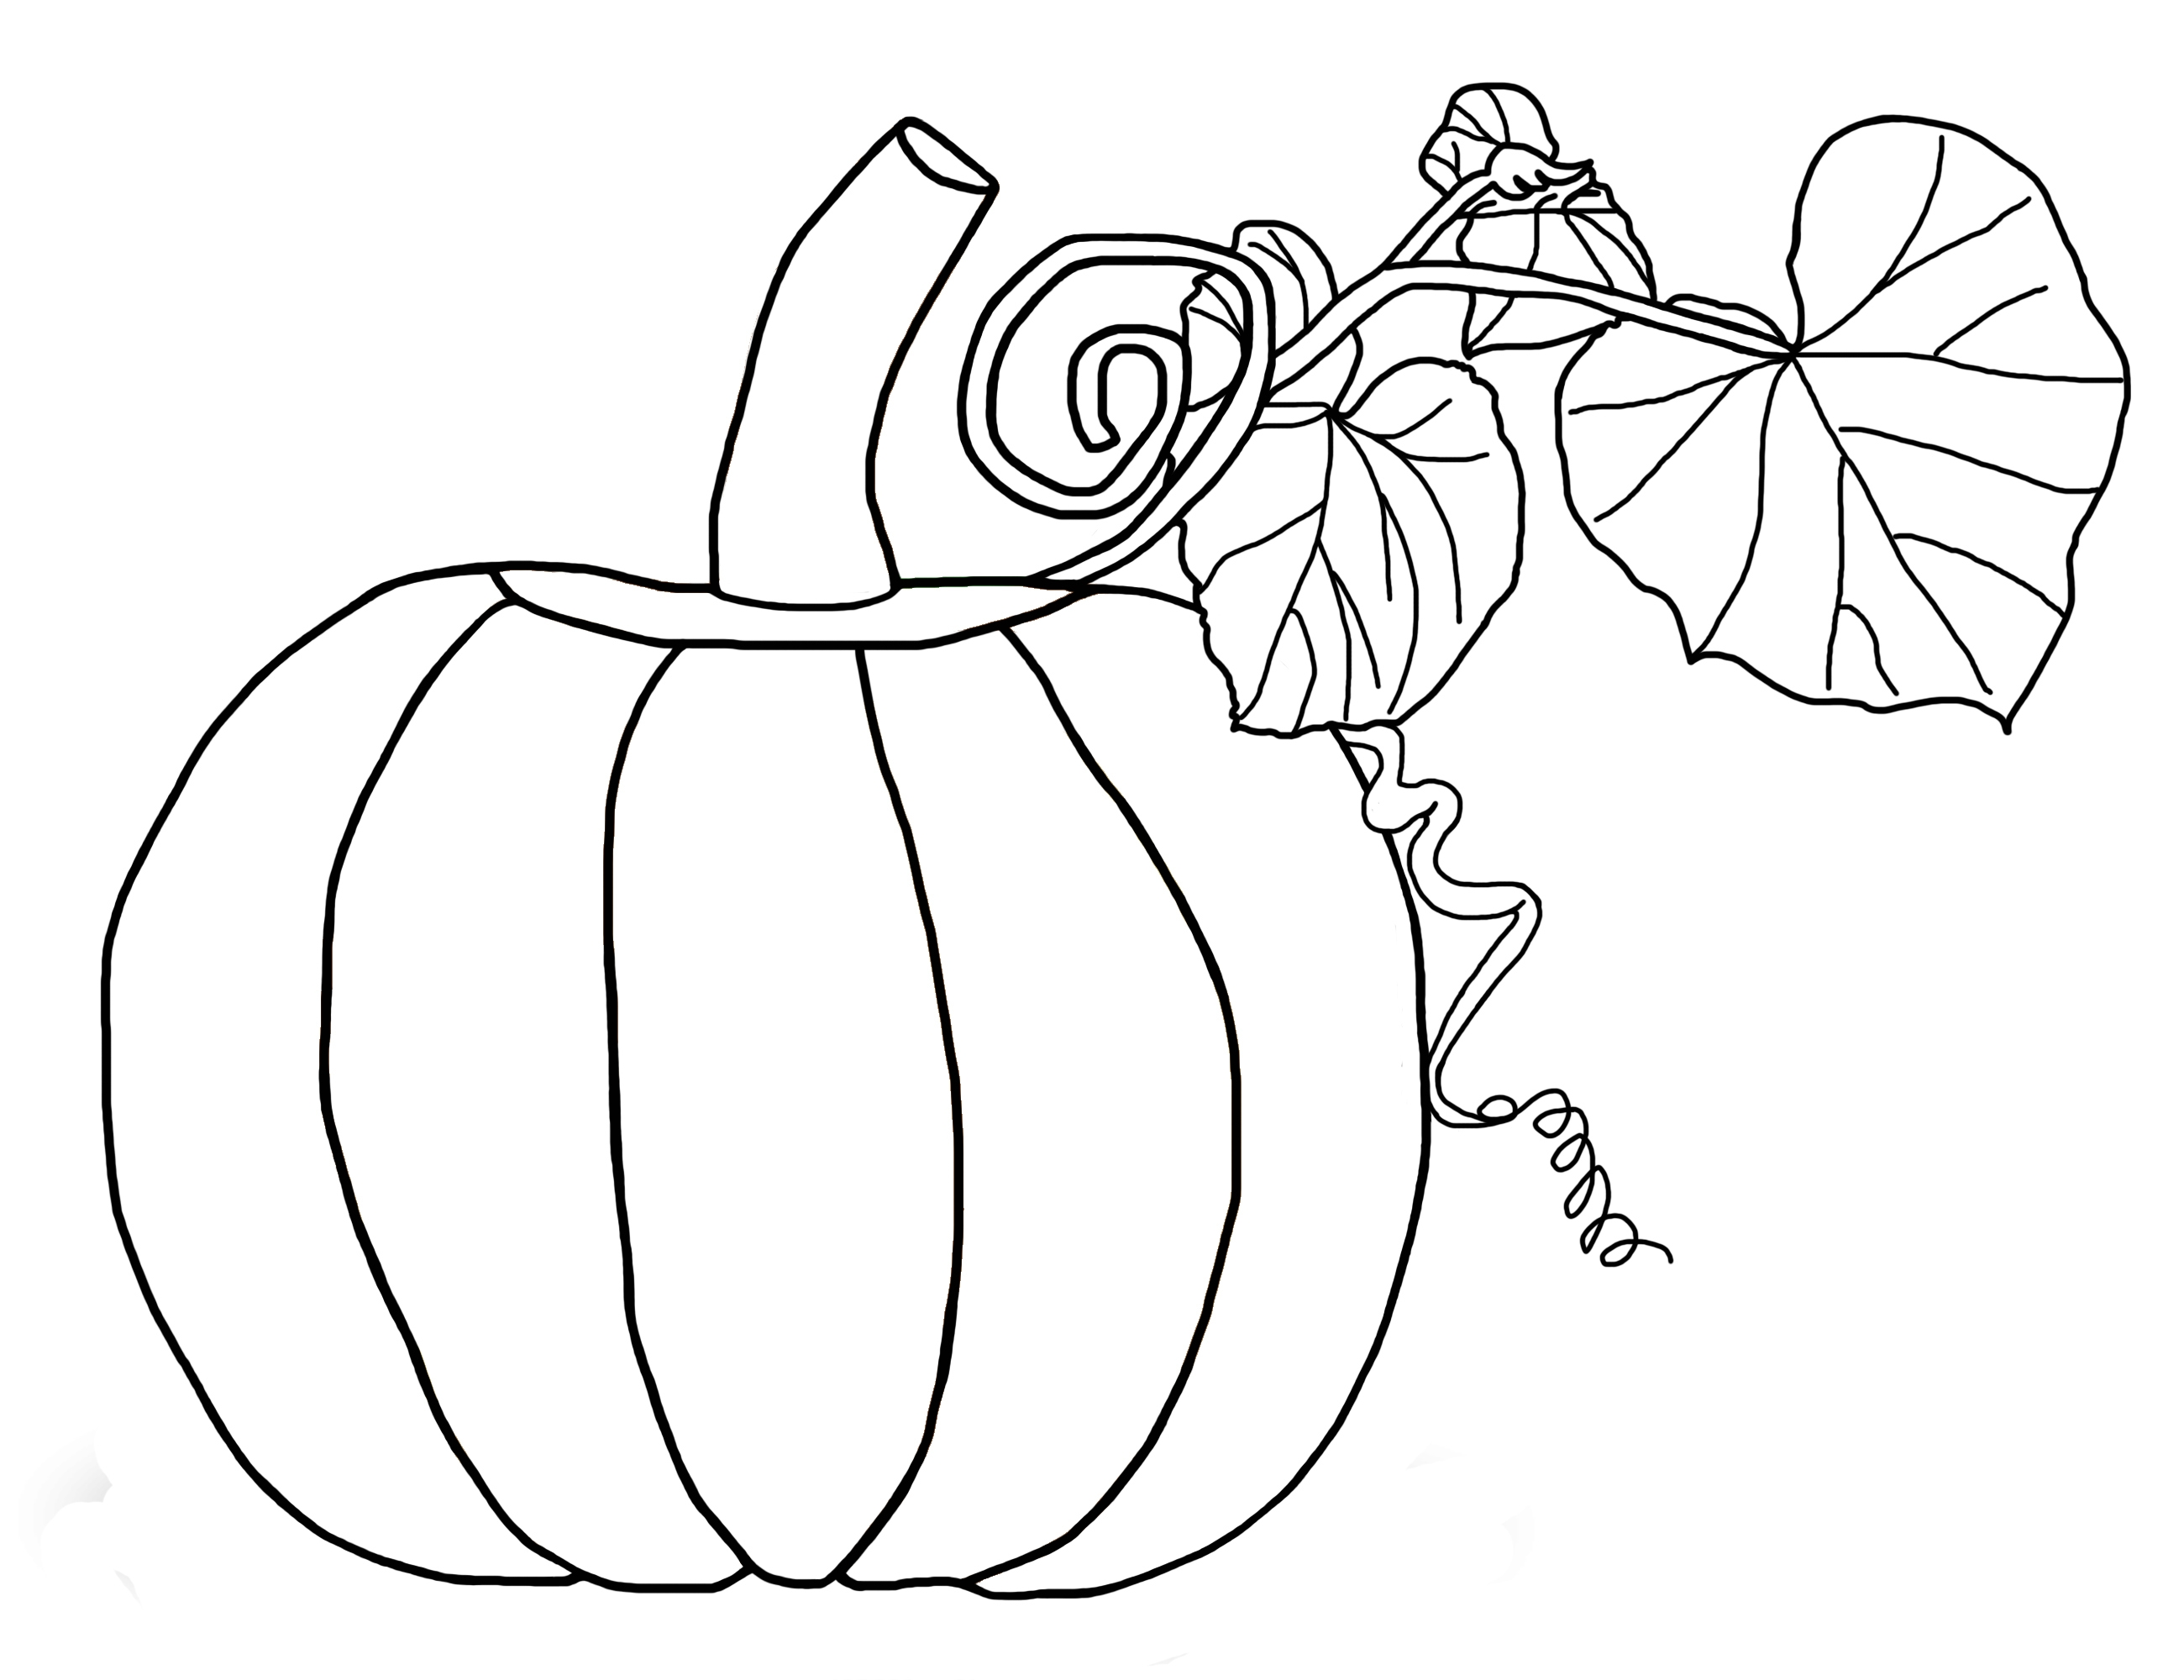 printable pumpkin coloring pages - pumpkin coloring pages